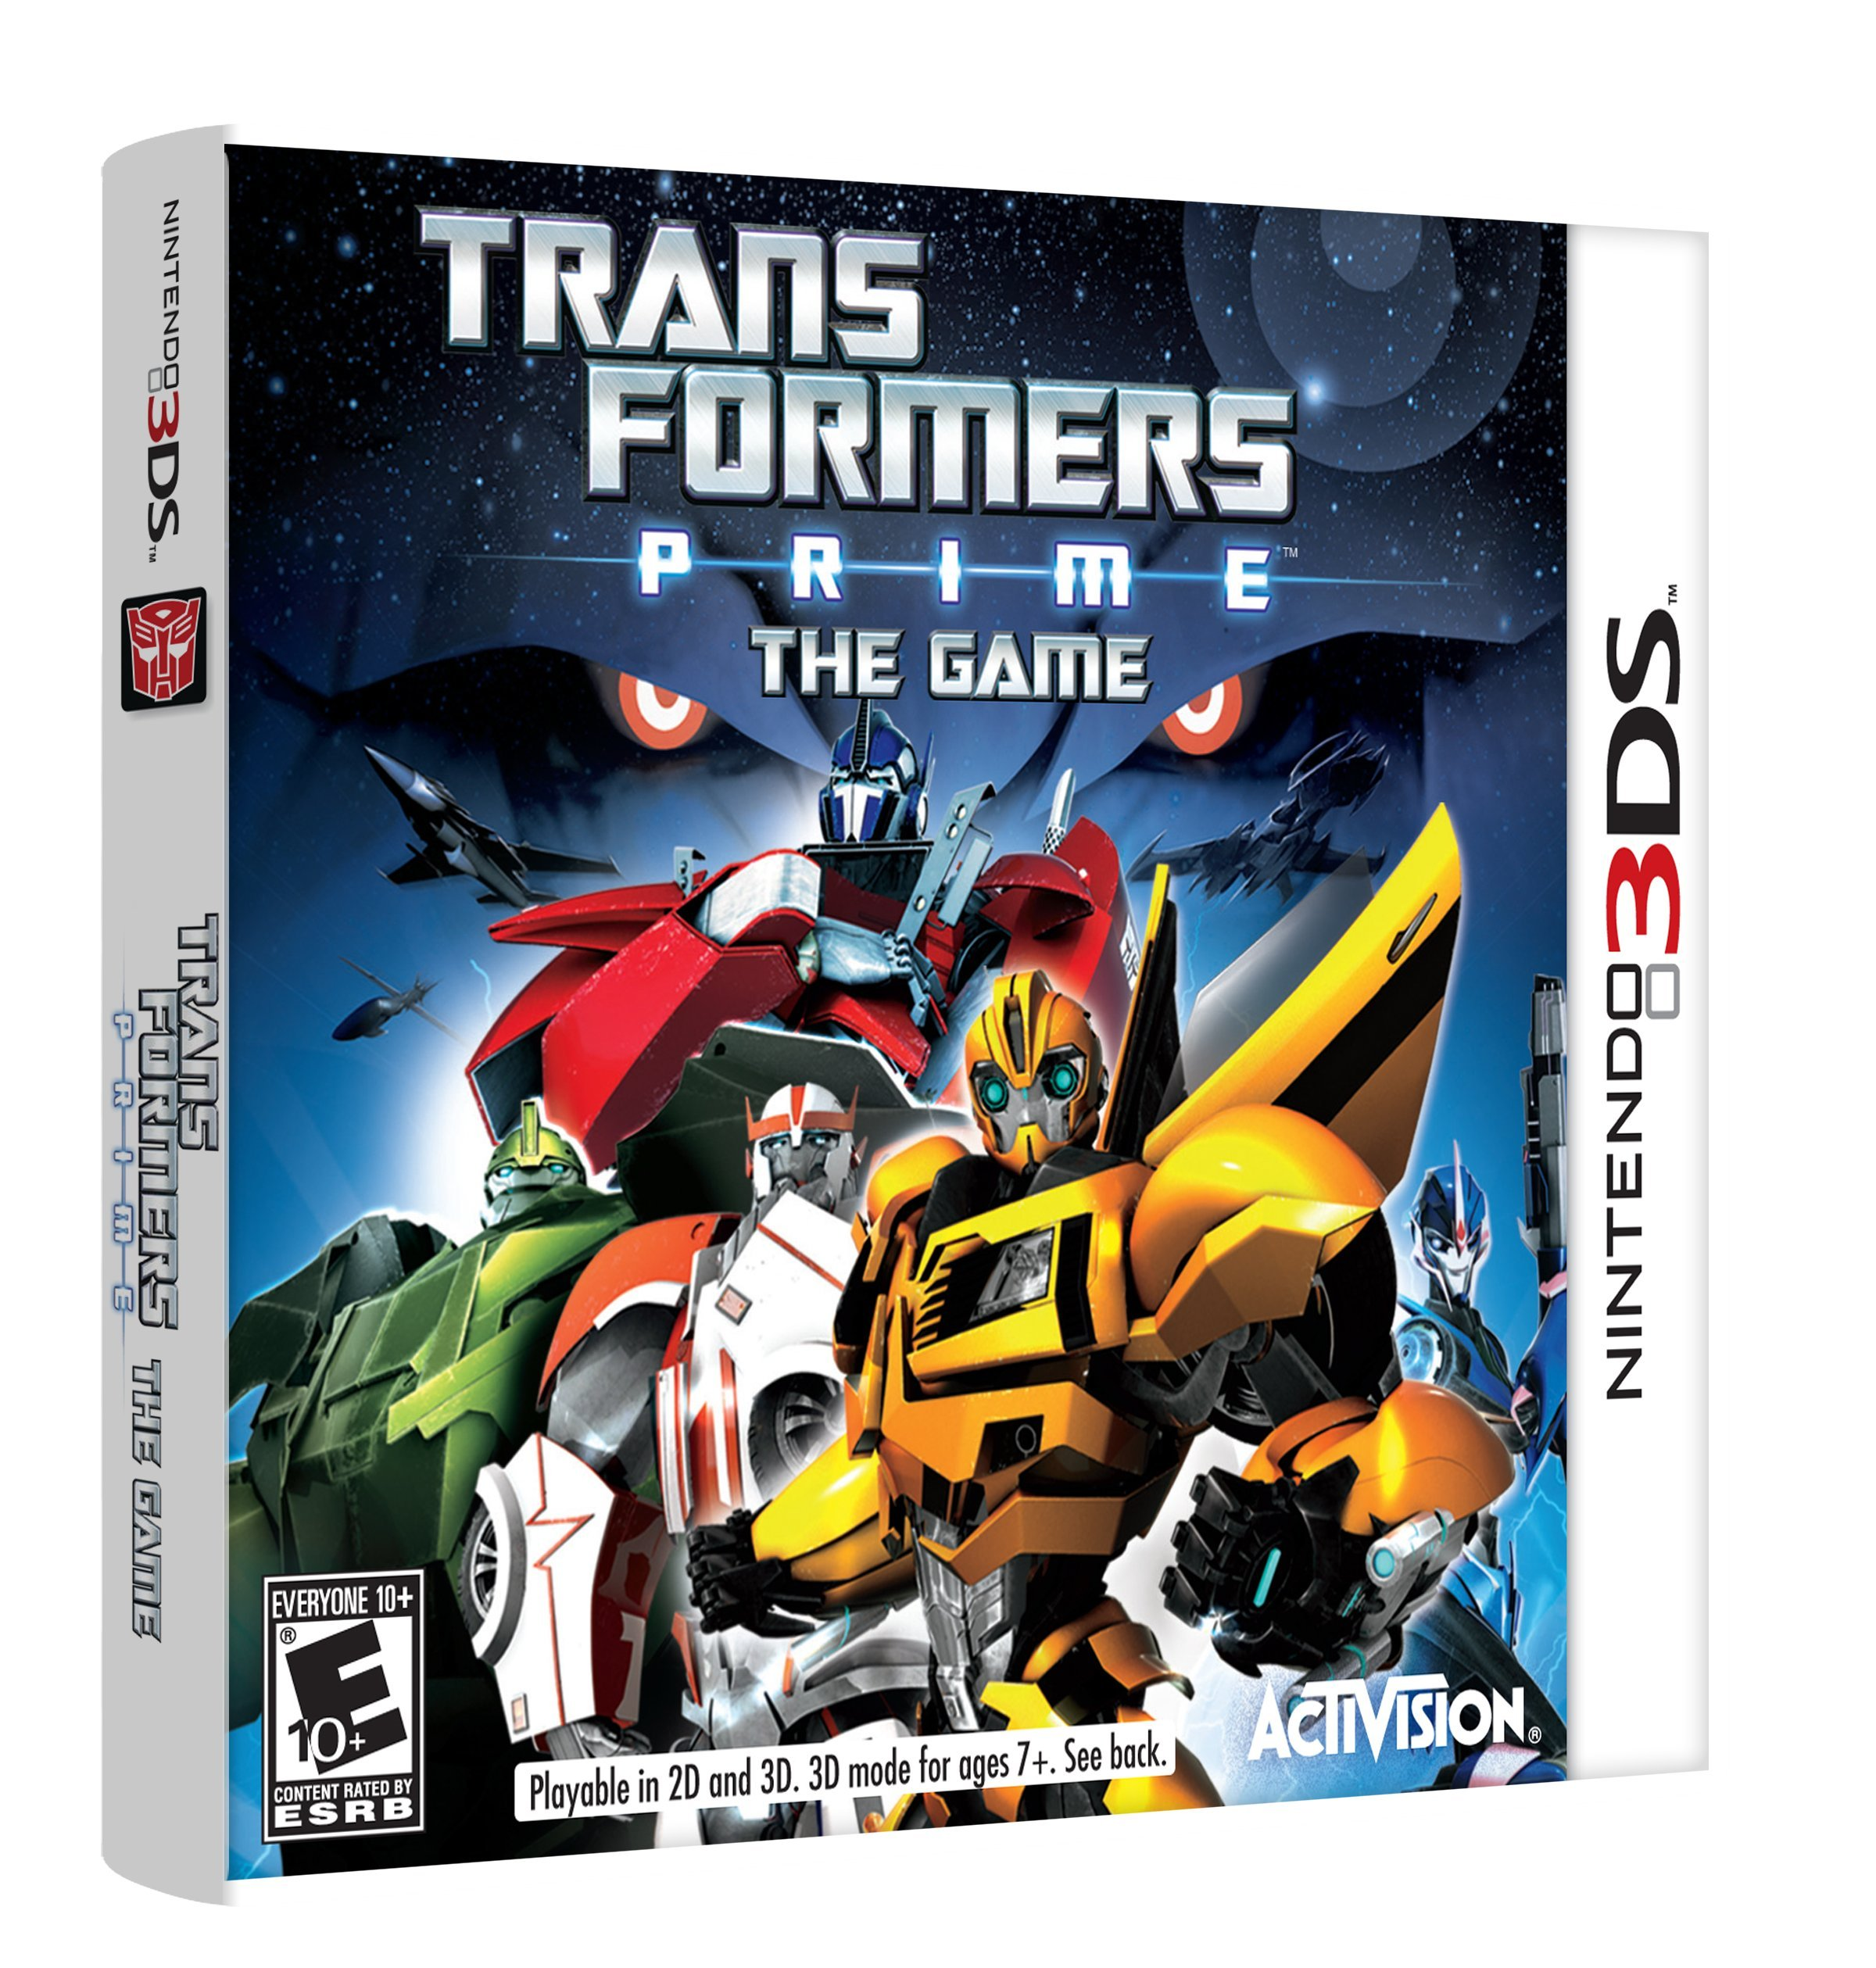 Transformers Prime: The Game - Nintendo 3DS